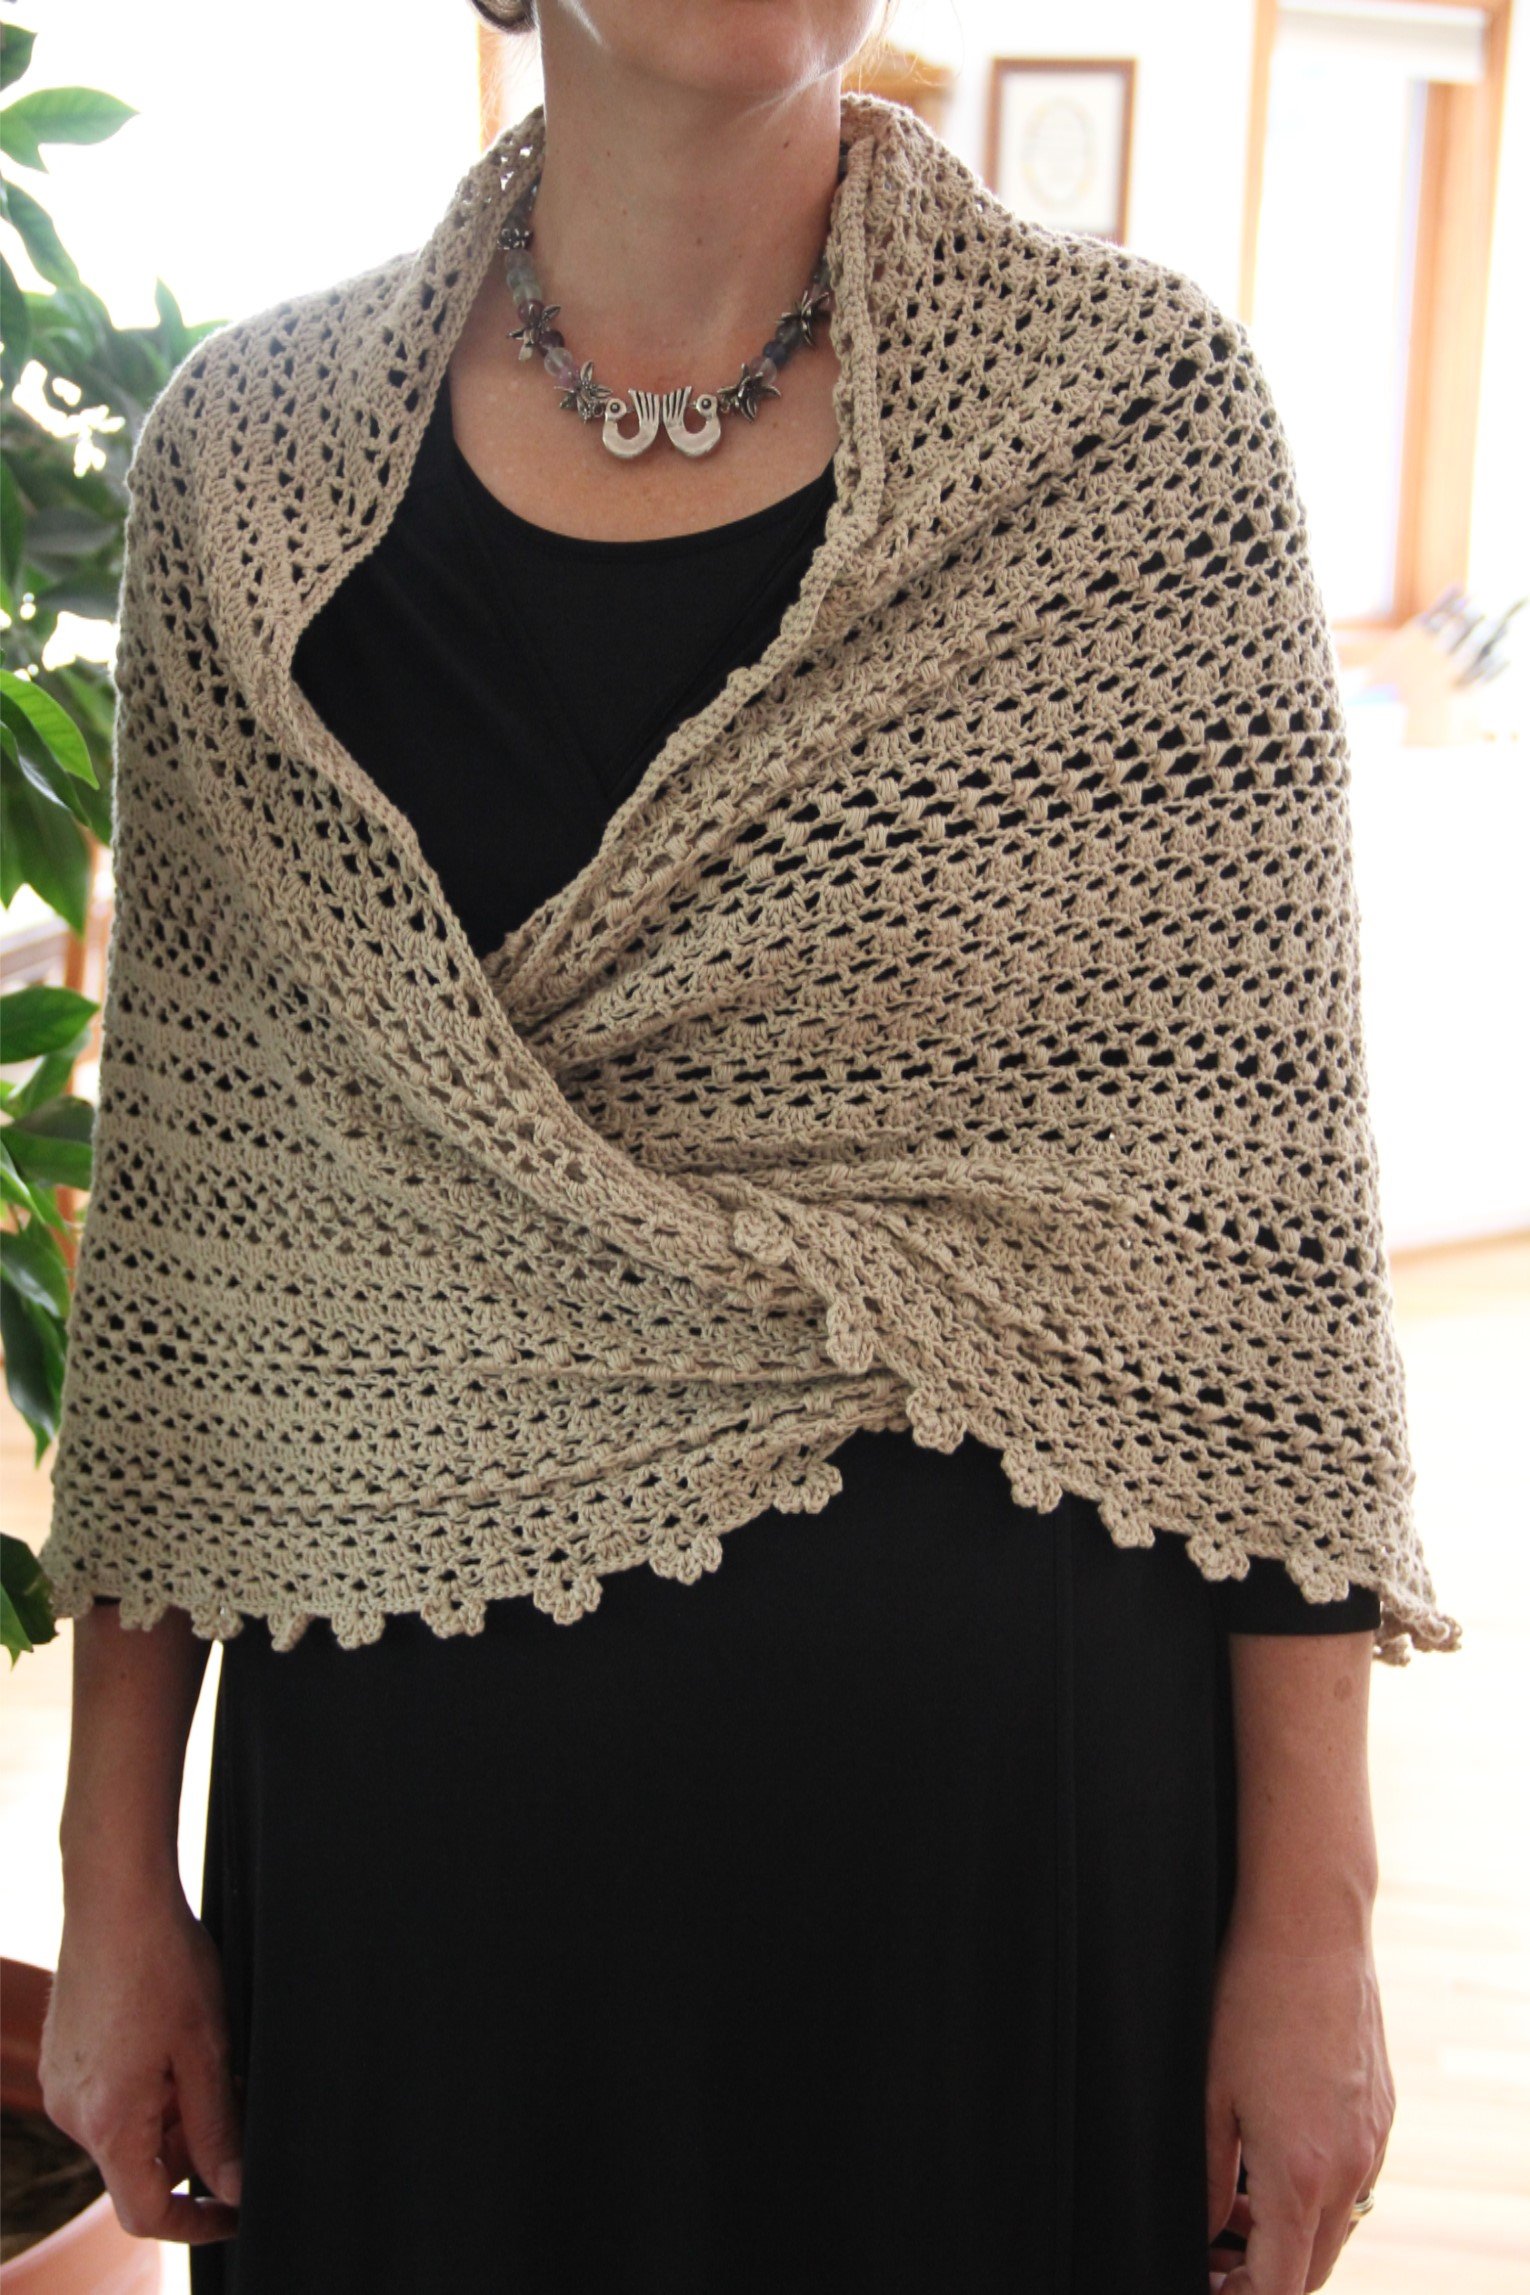 Crochet Shawl Patterns : alipyper - crocheted oatmeal puff shawl free pattern